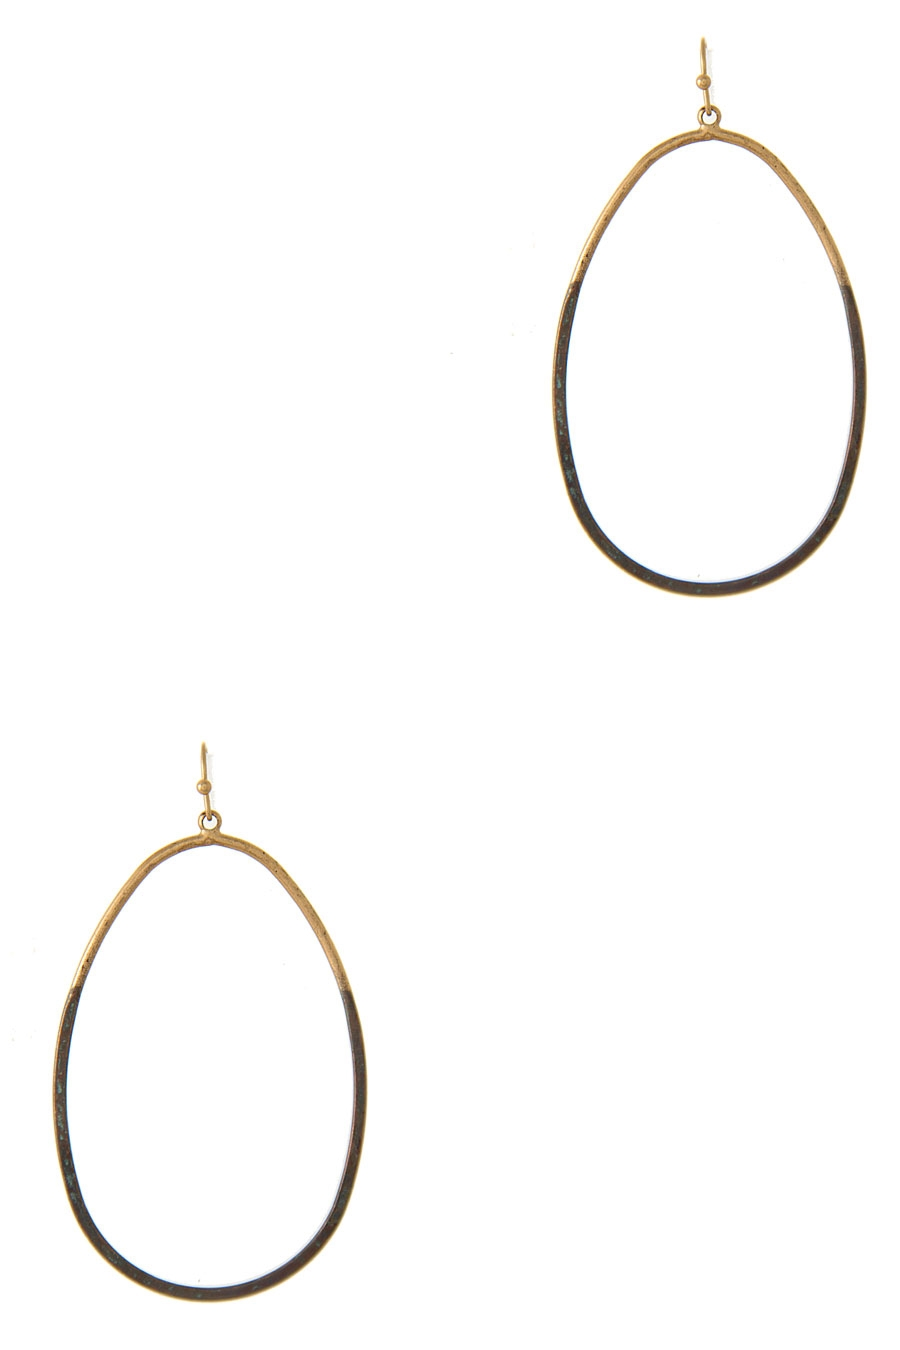 THIN CUT-OUT OVAL EARRING - orangeshine.com